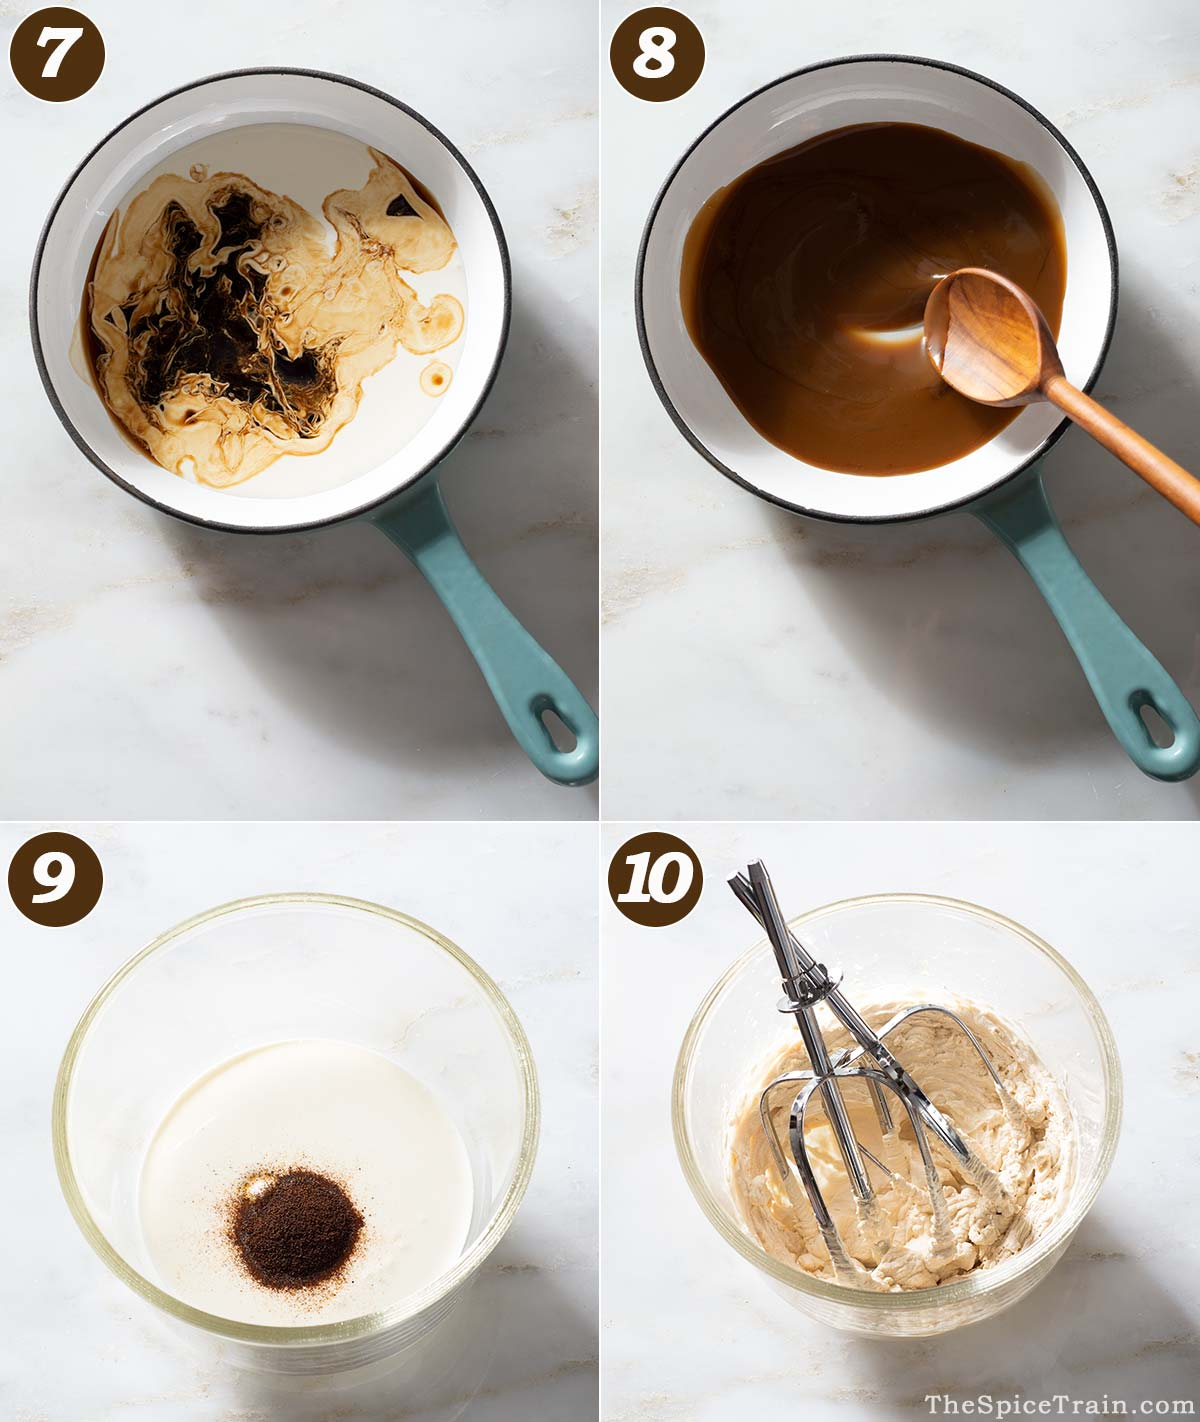 Coffee sauce and espresso whipped cream preparation.